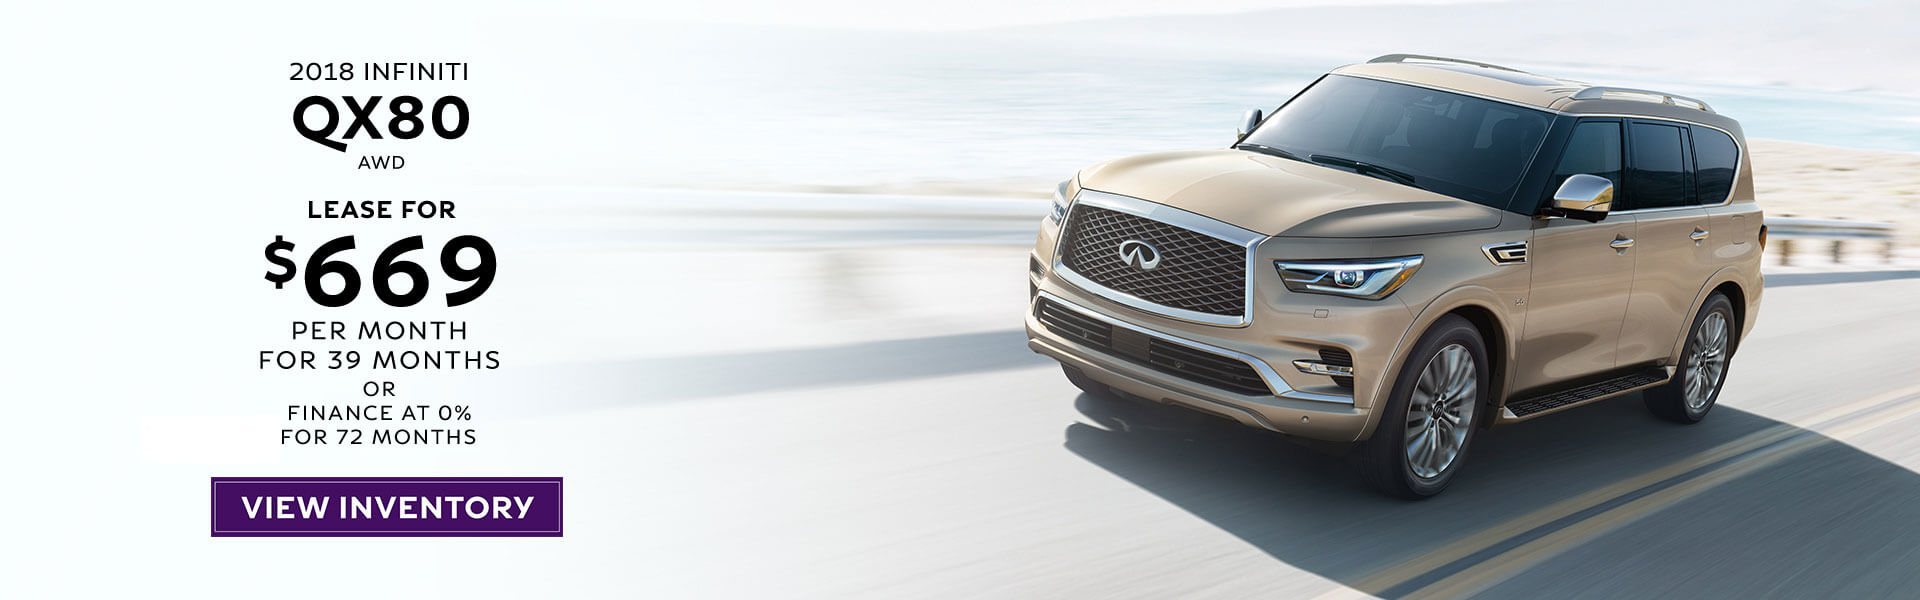 2019 QX80 - Lease for $669